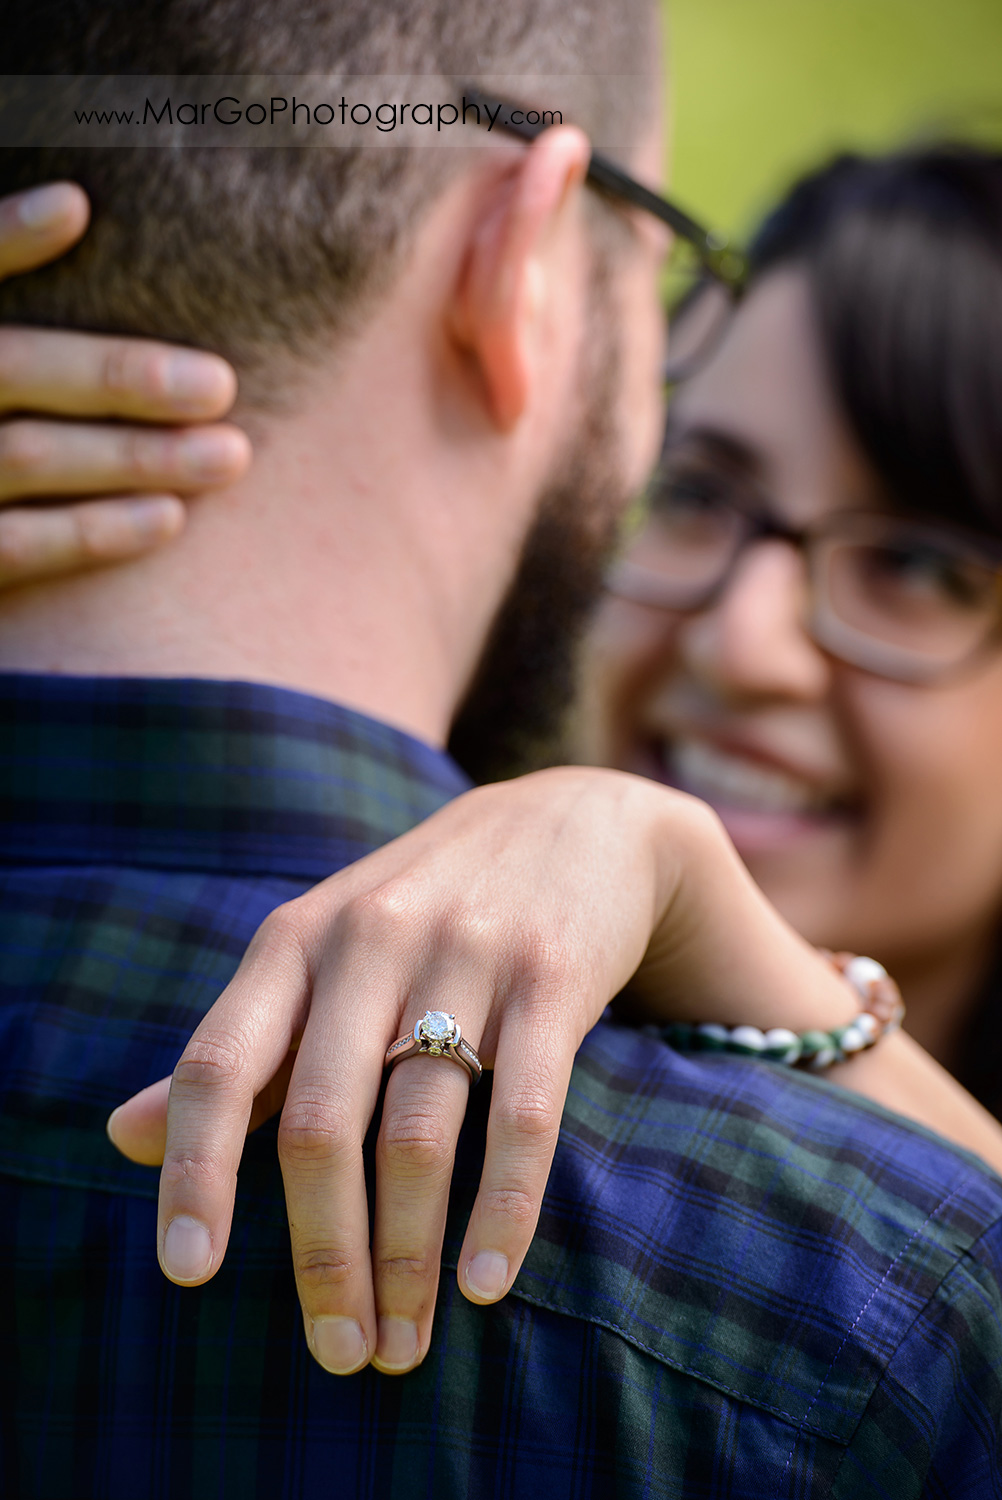 ring shot of man in blue shirt and woman in blue dress during engagement session at Sunol Regional Wilderness